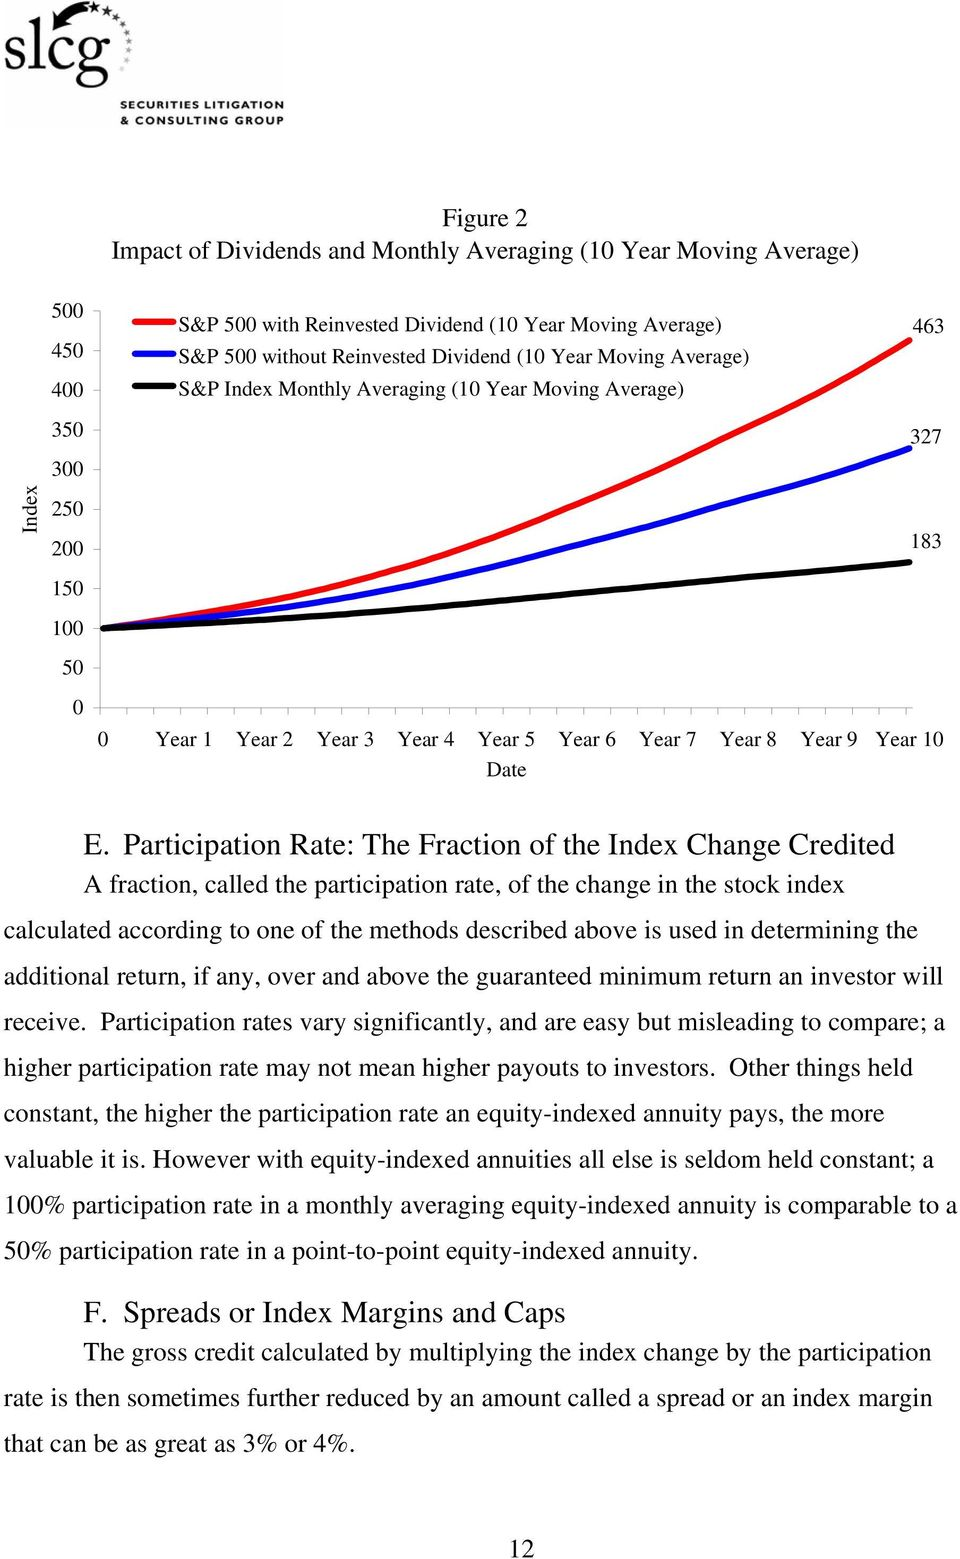 Participation Rate: The Fraction of the Index Change Credited A fraction, called the participation rate, of the change in the stock index calculated according to one of the methods described above is